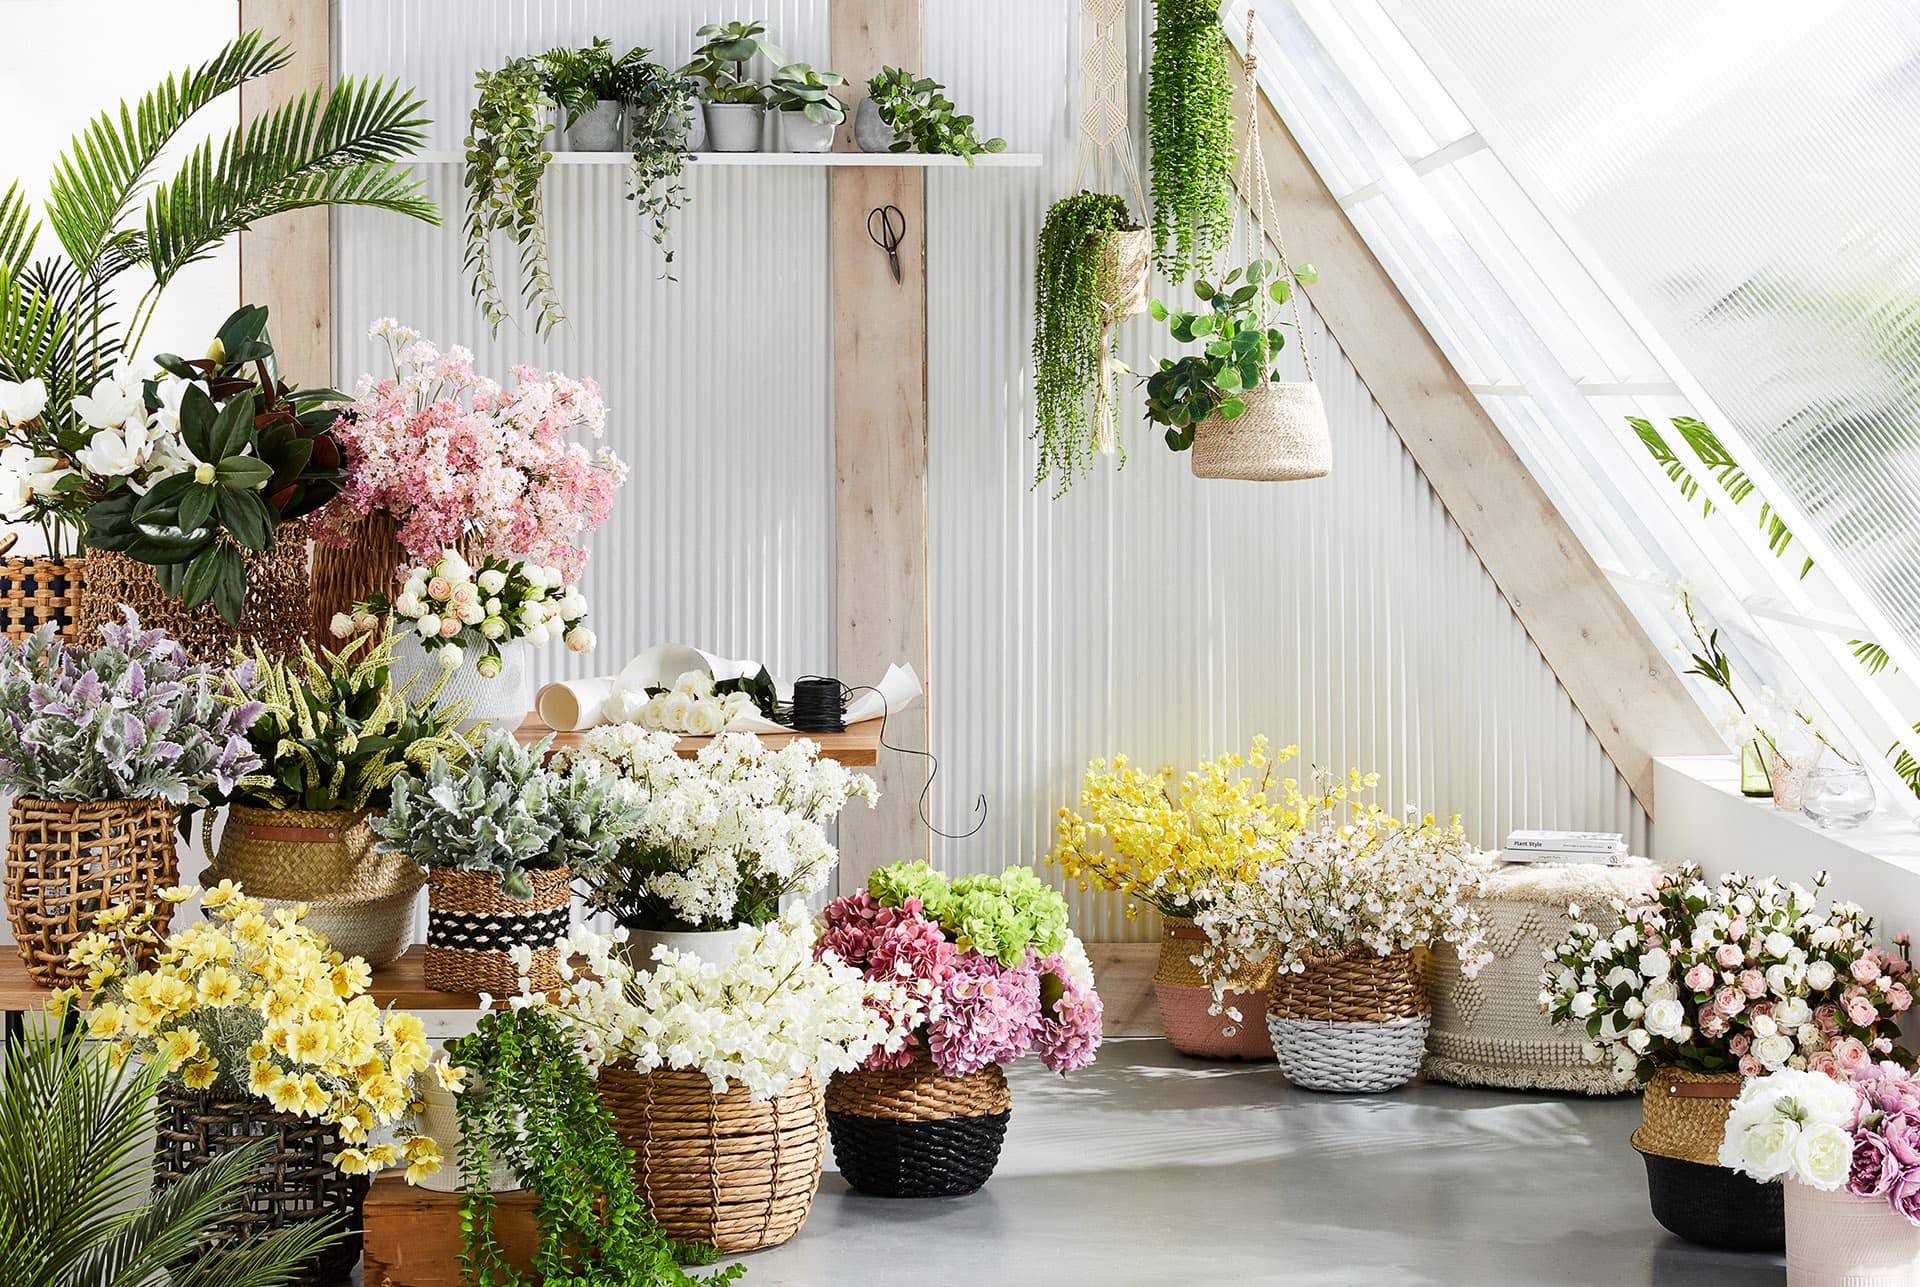 Buy Artificial Plants Where To Buy Fake Plants And Flowers In Australia